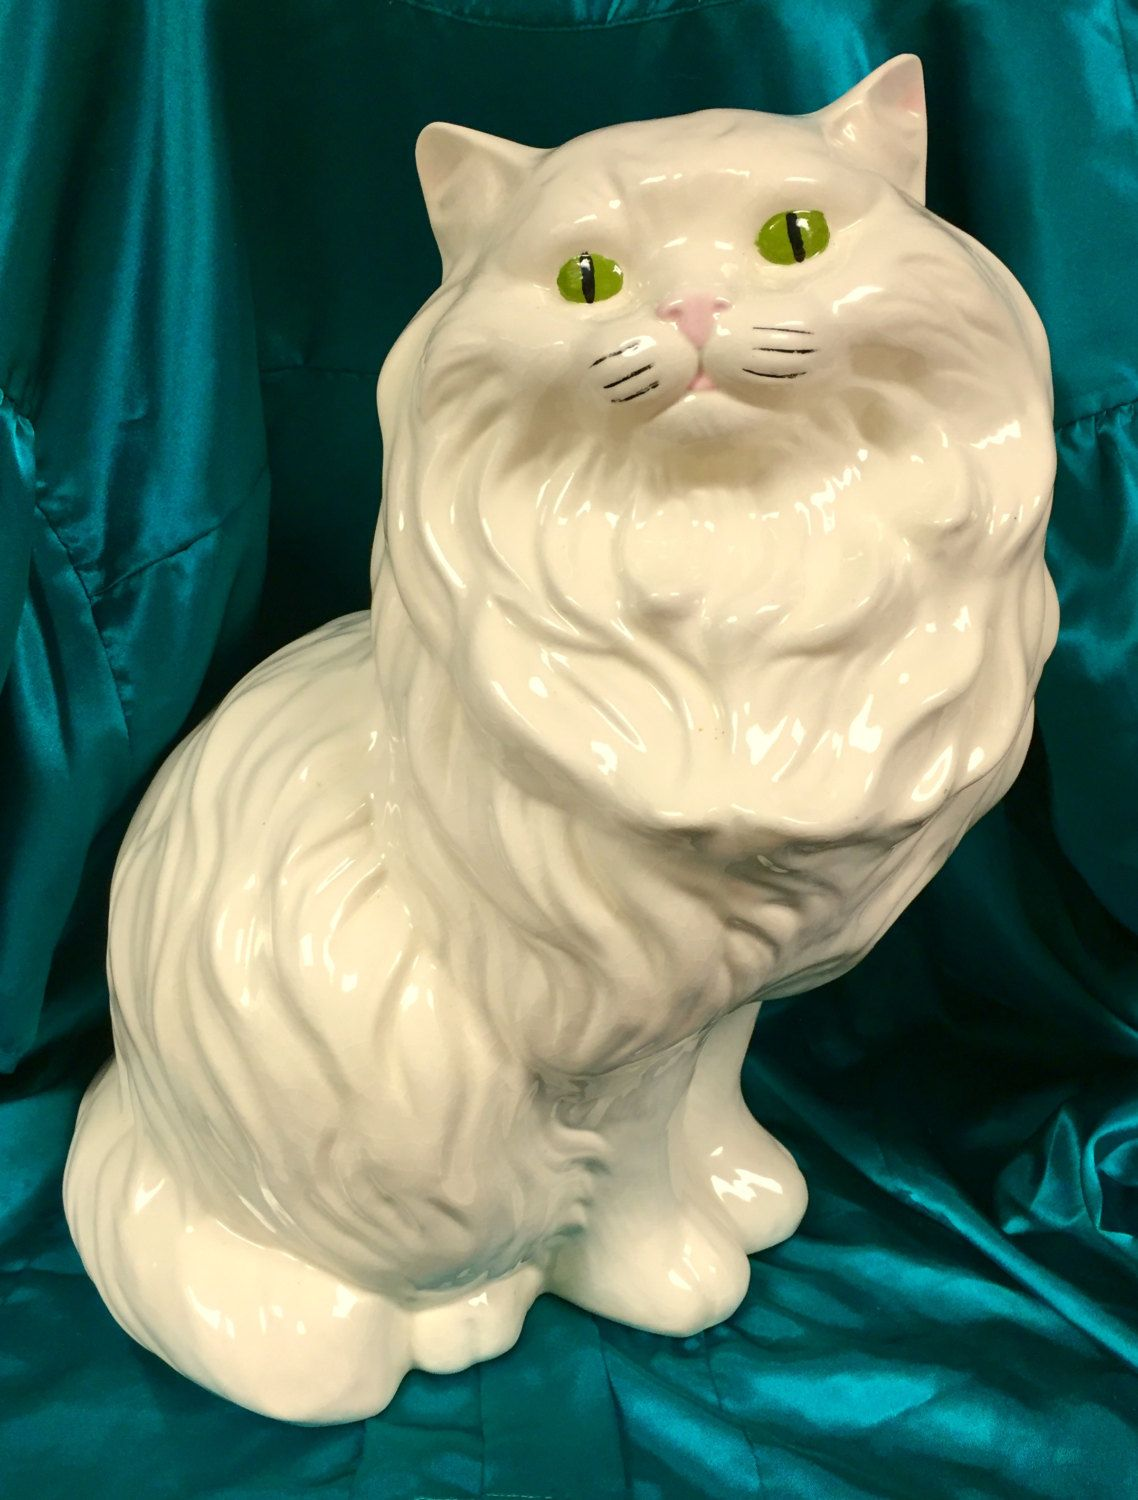 Collectors Limited Edition Vgc For Sale White Ceramic Cat-shaped Bowl Whiskers Official